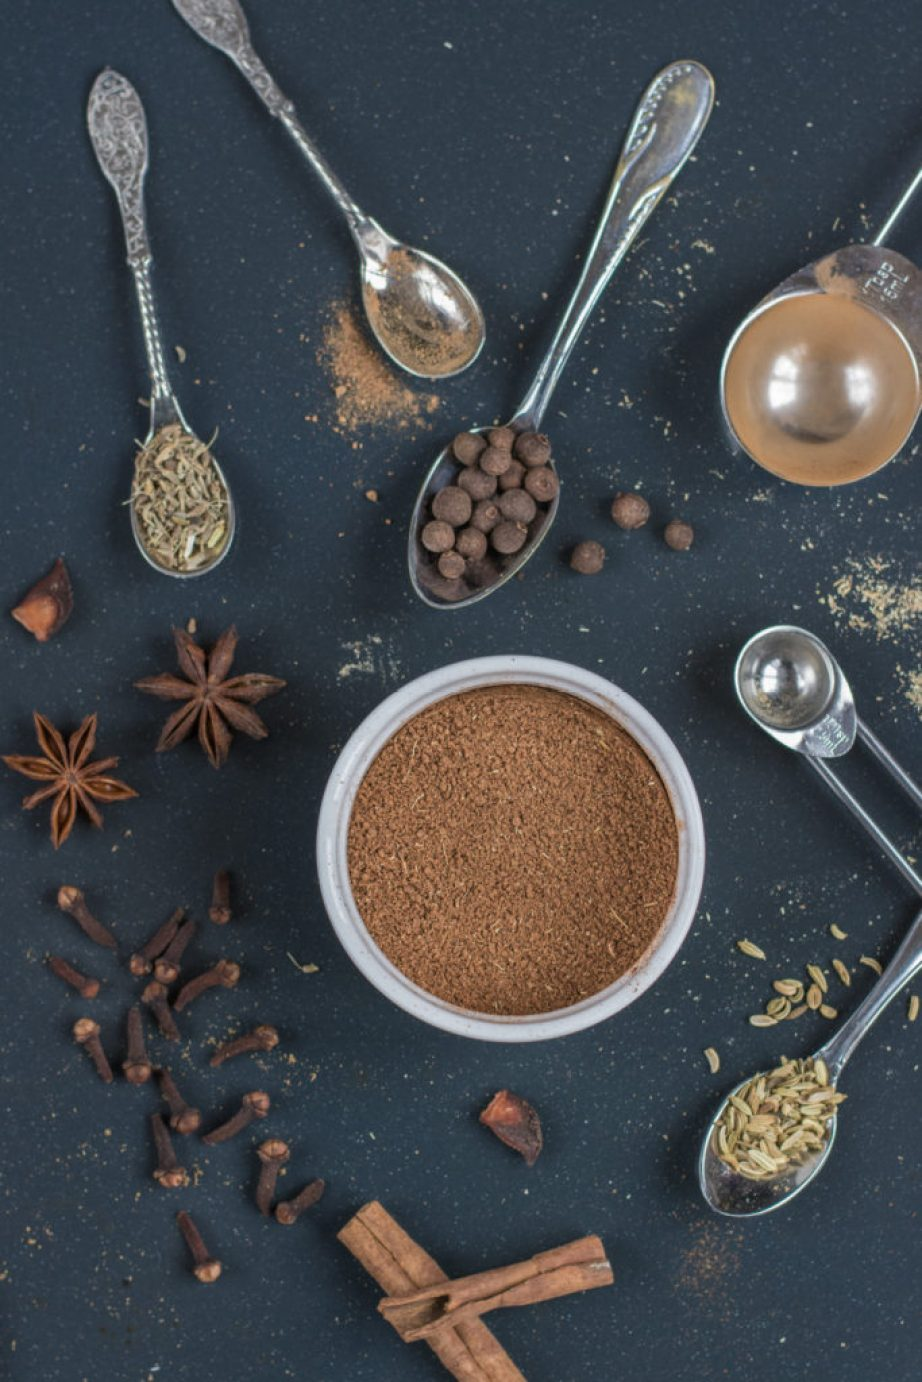 Pernik Spice mix recipe. A mix of spices such as cinnamon, allspice, clove, anise, nutmeg and others used in pernik, Czech traditional spice cake.